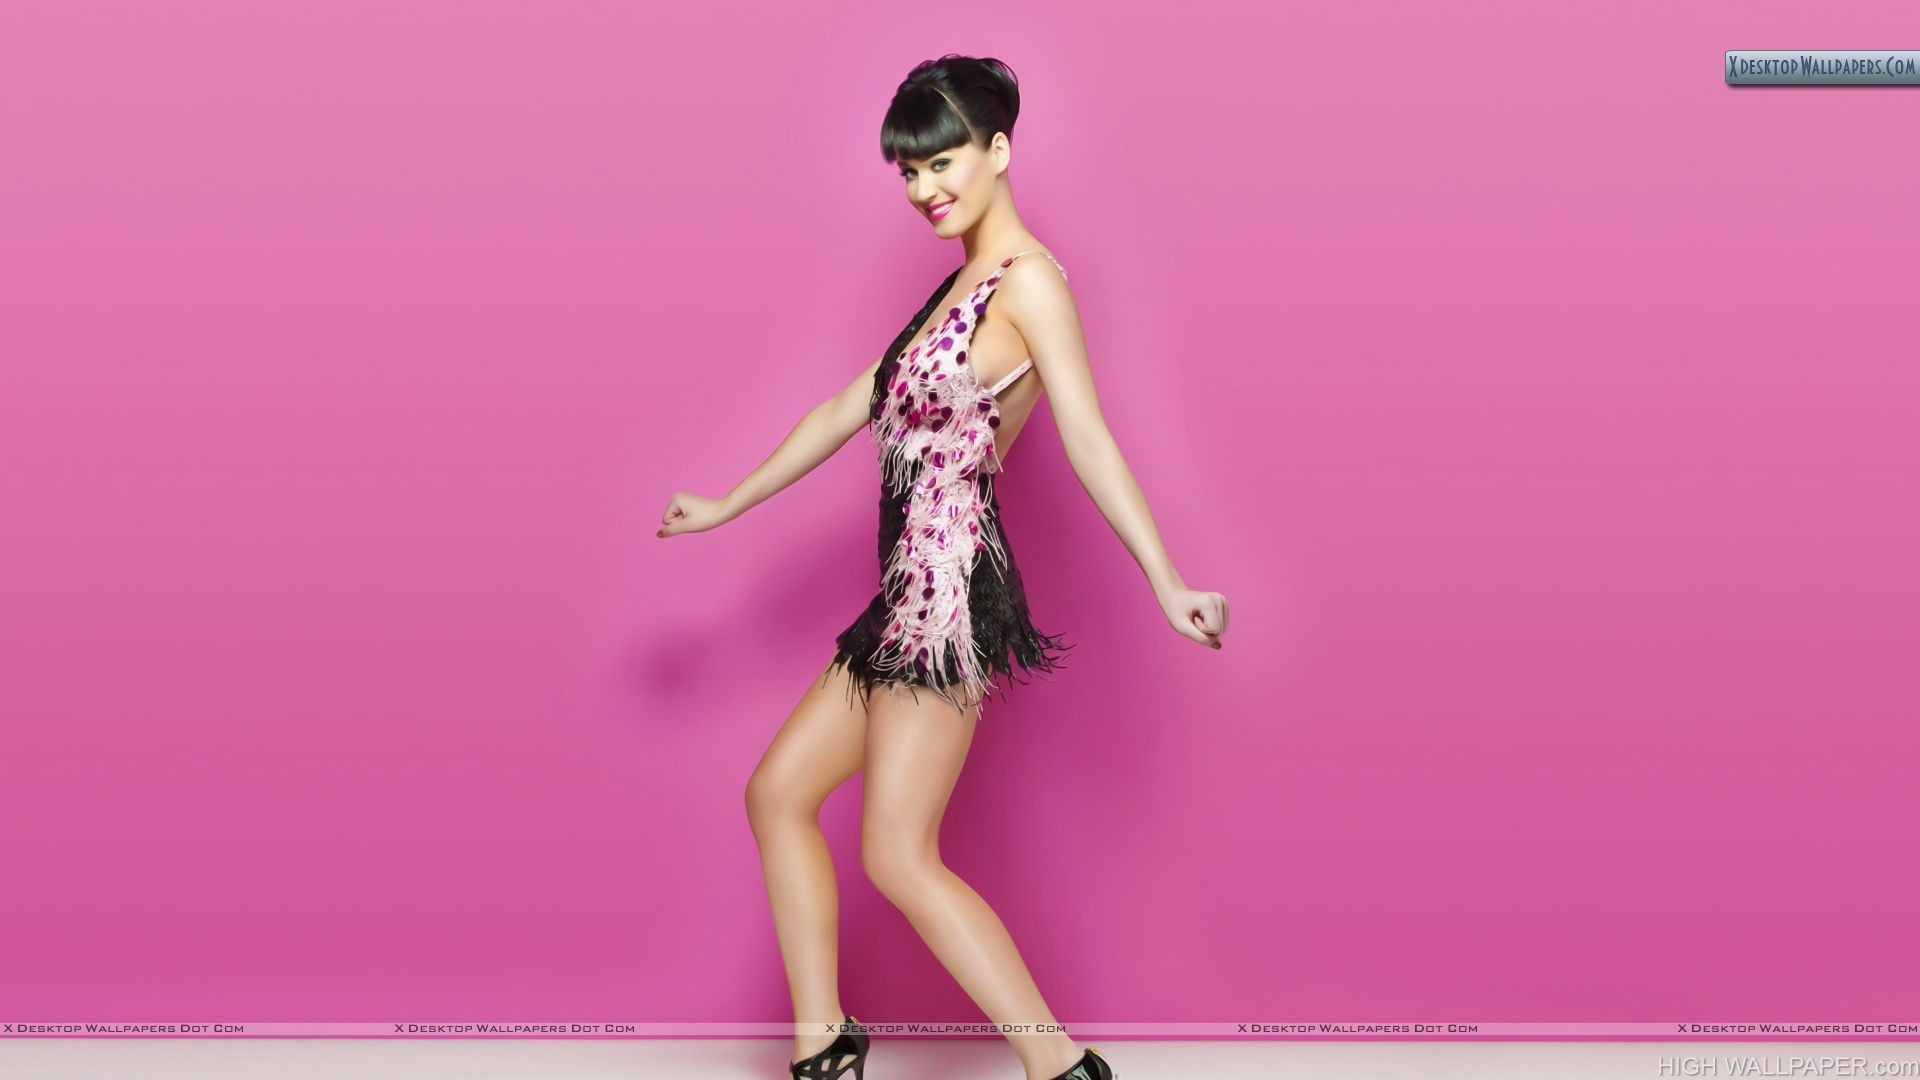 Katy Perry Pink Wall Awesom Dress